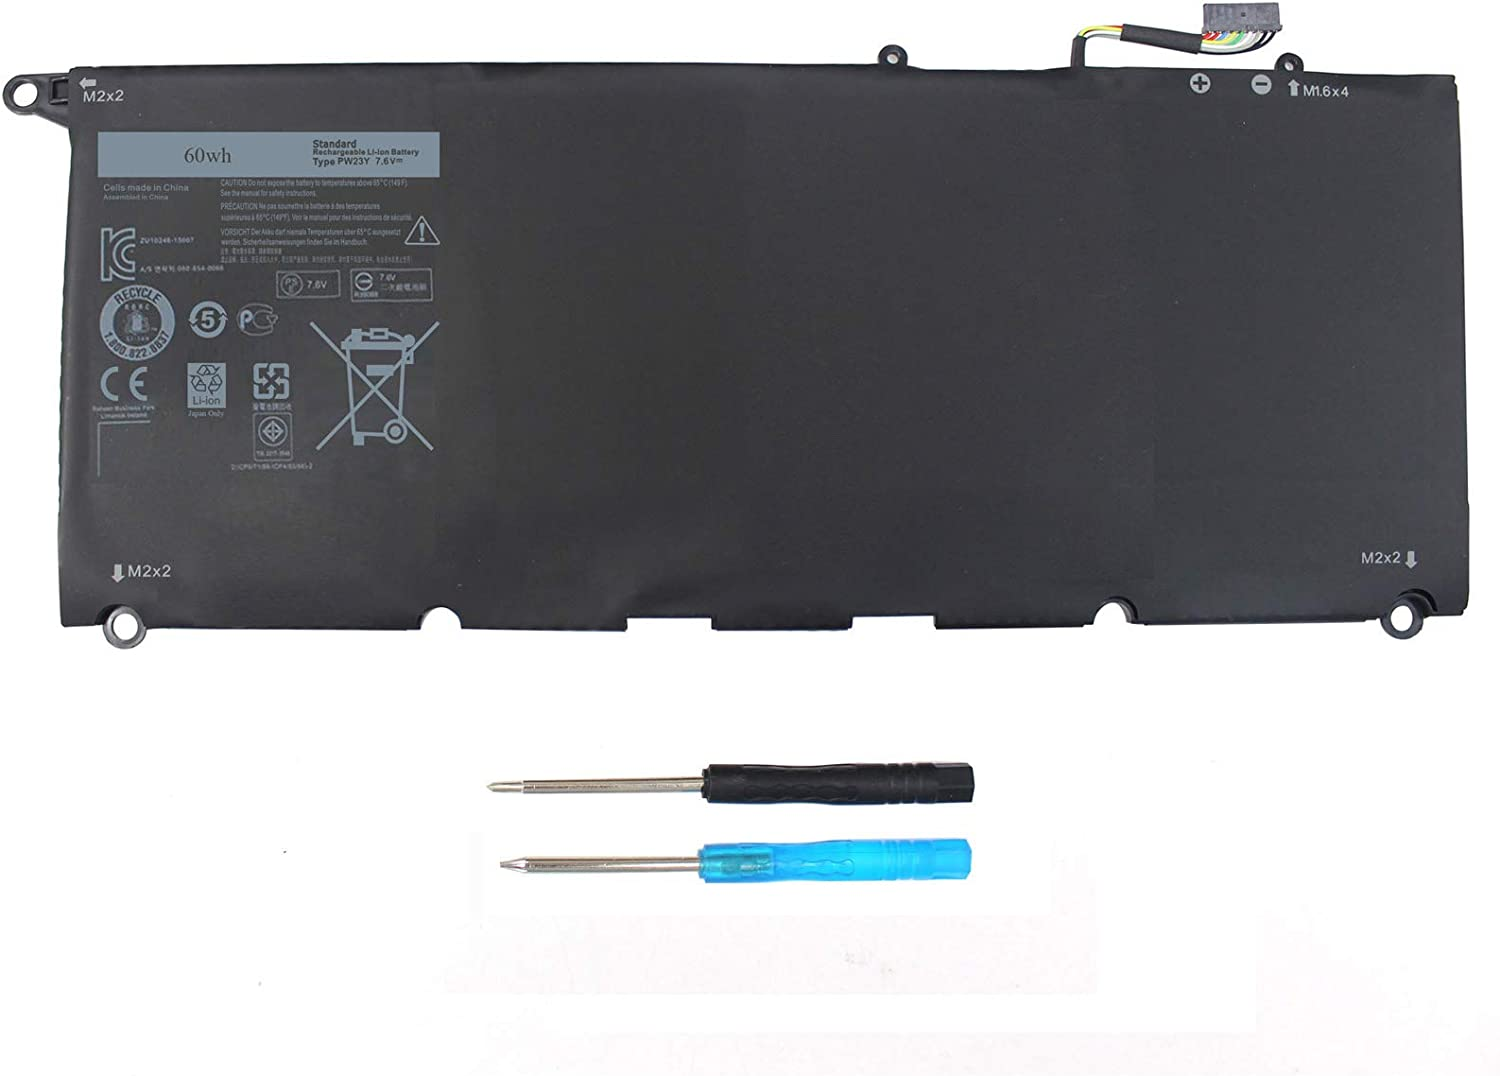 PW23Y Laptop Battery Compatible with P54G002 Dell XPS NEW before selling 9360 13 Import